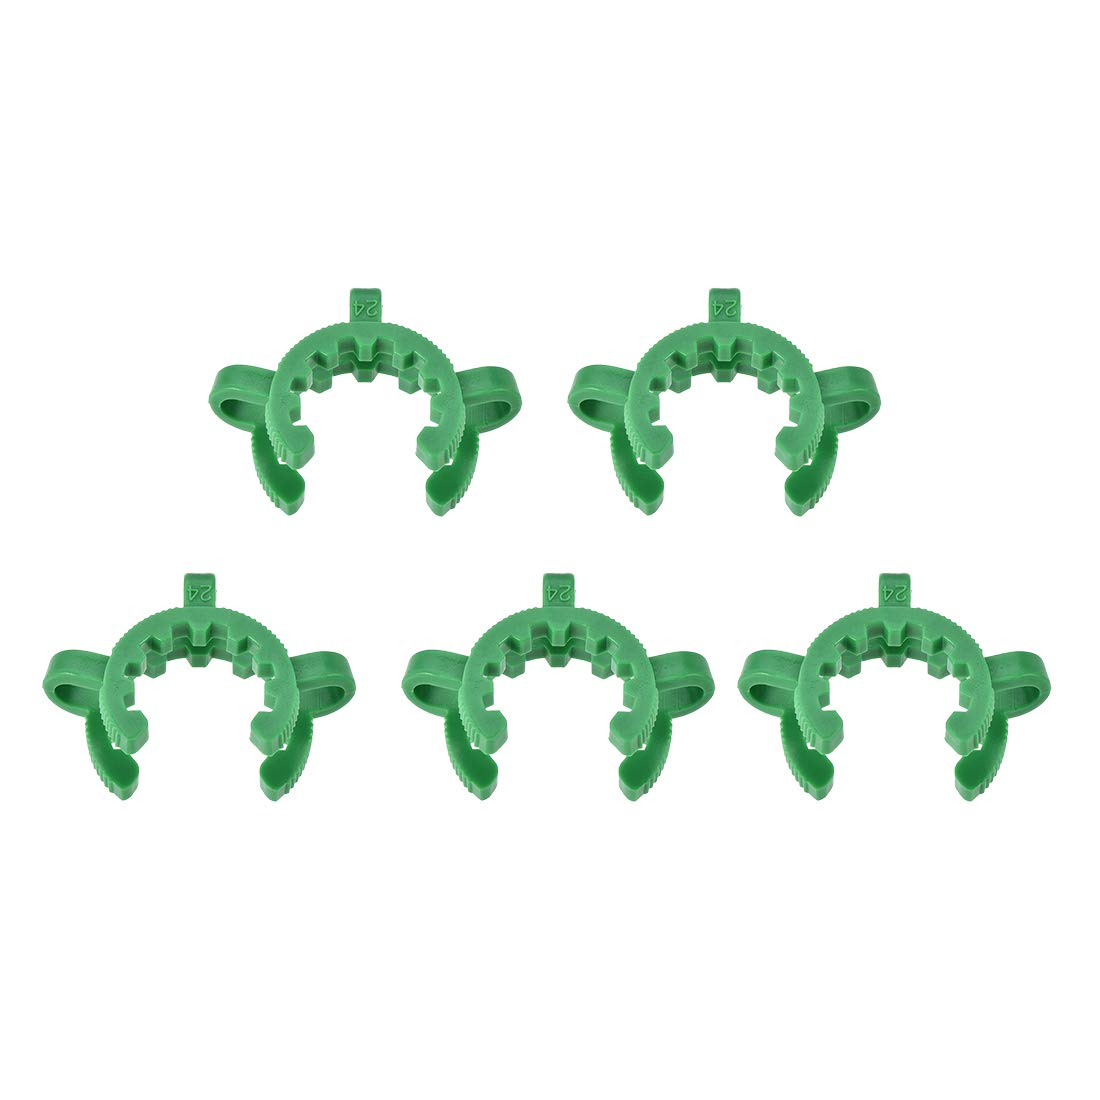 uxcell Lab Joint Clip Plastic Clamp Mounting Clips for 24//25 or 24//40 Glass Taper Joints Laboratory Connector Green 5Pcs